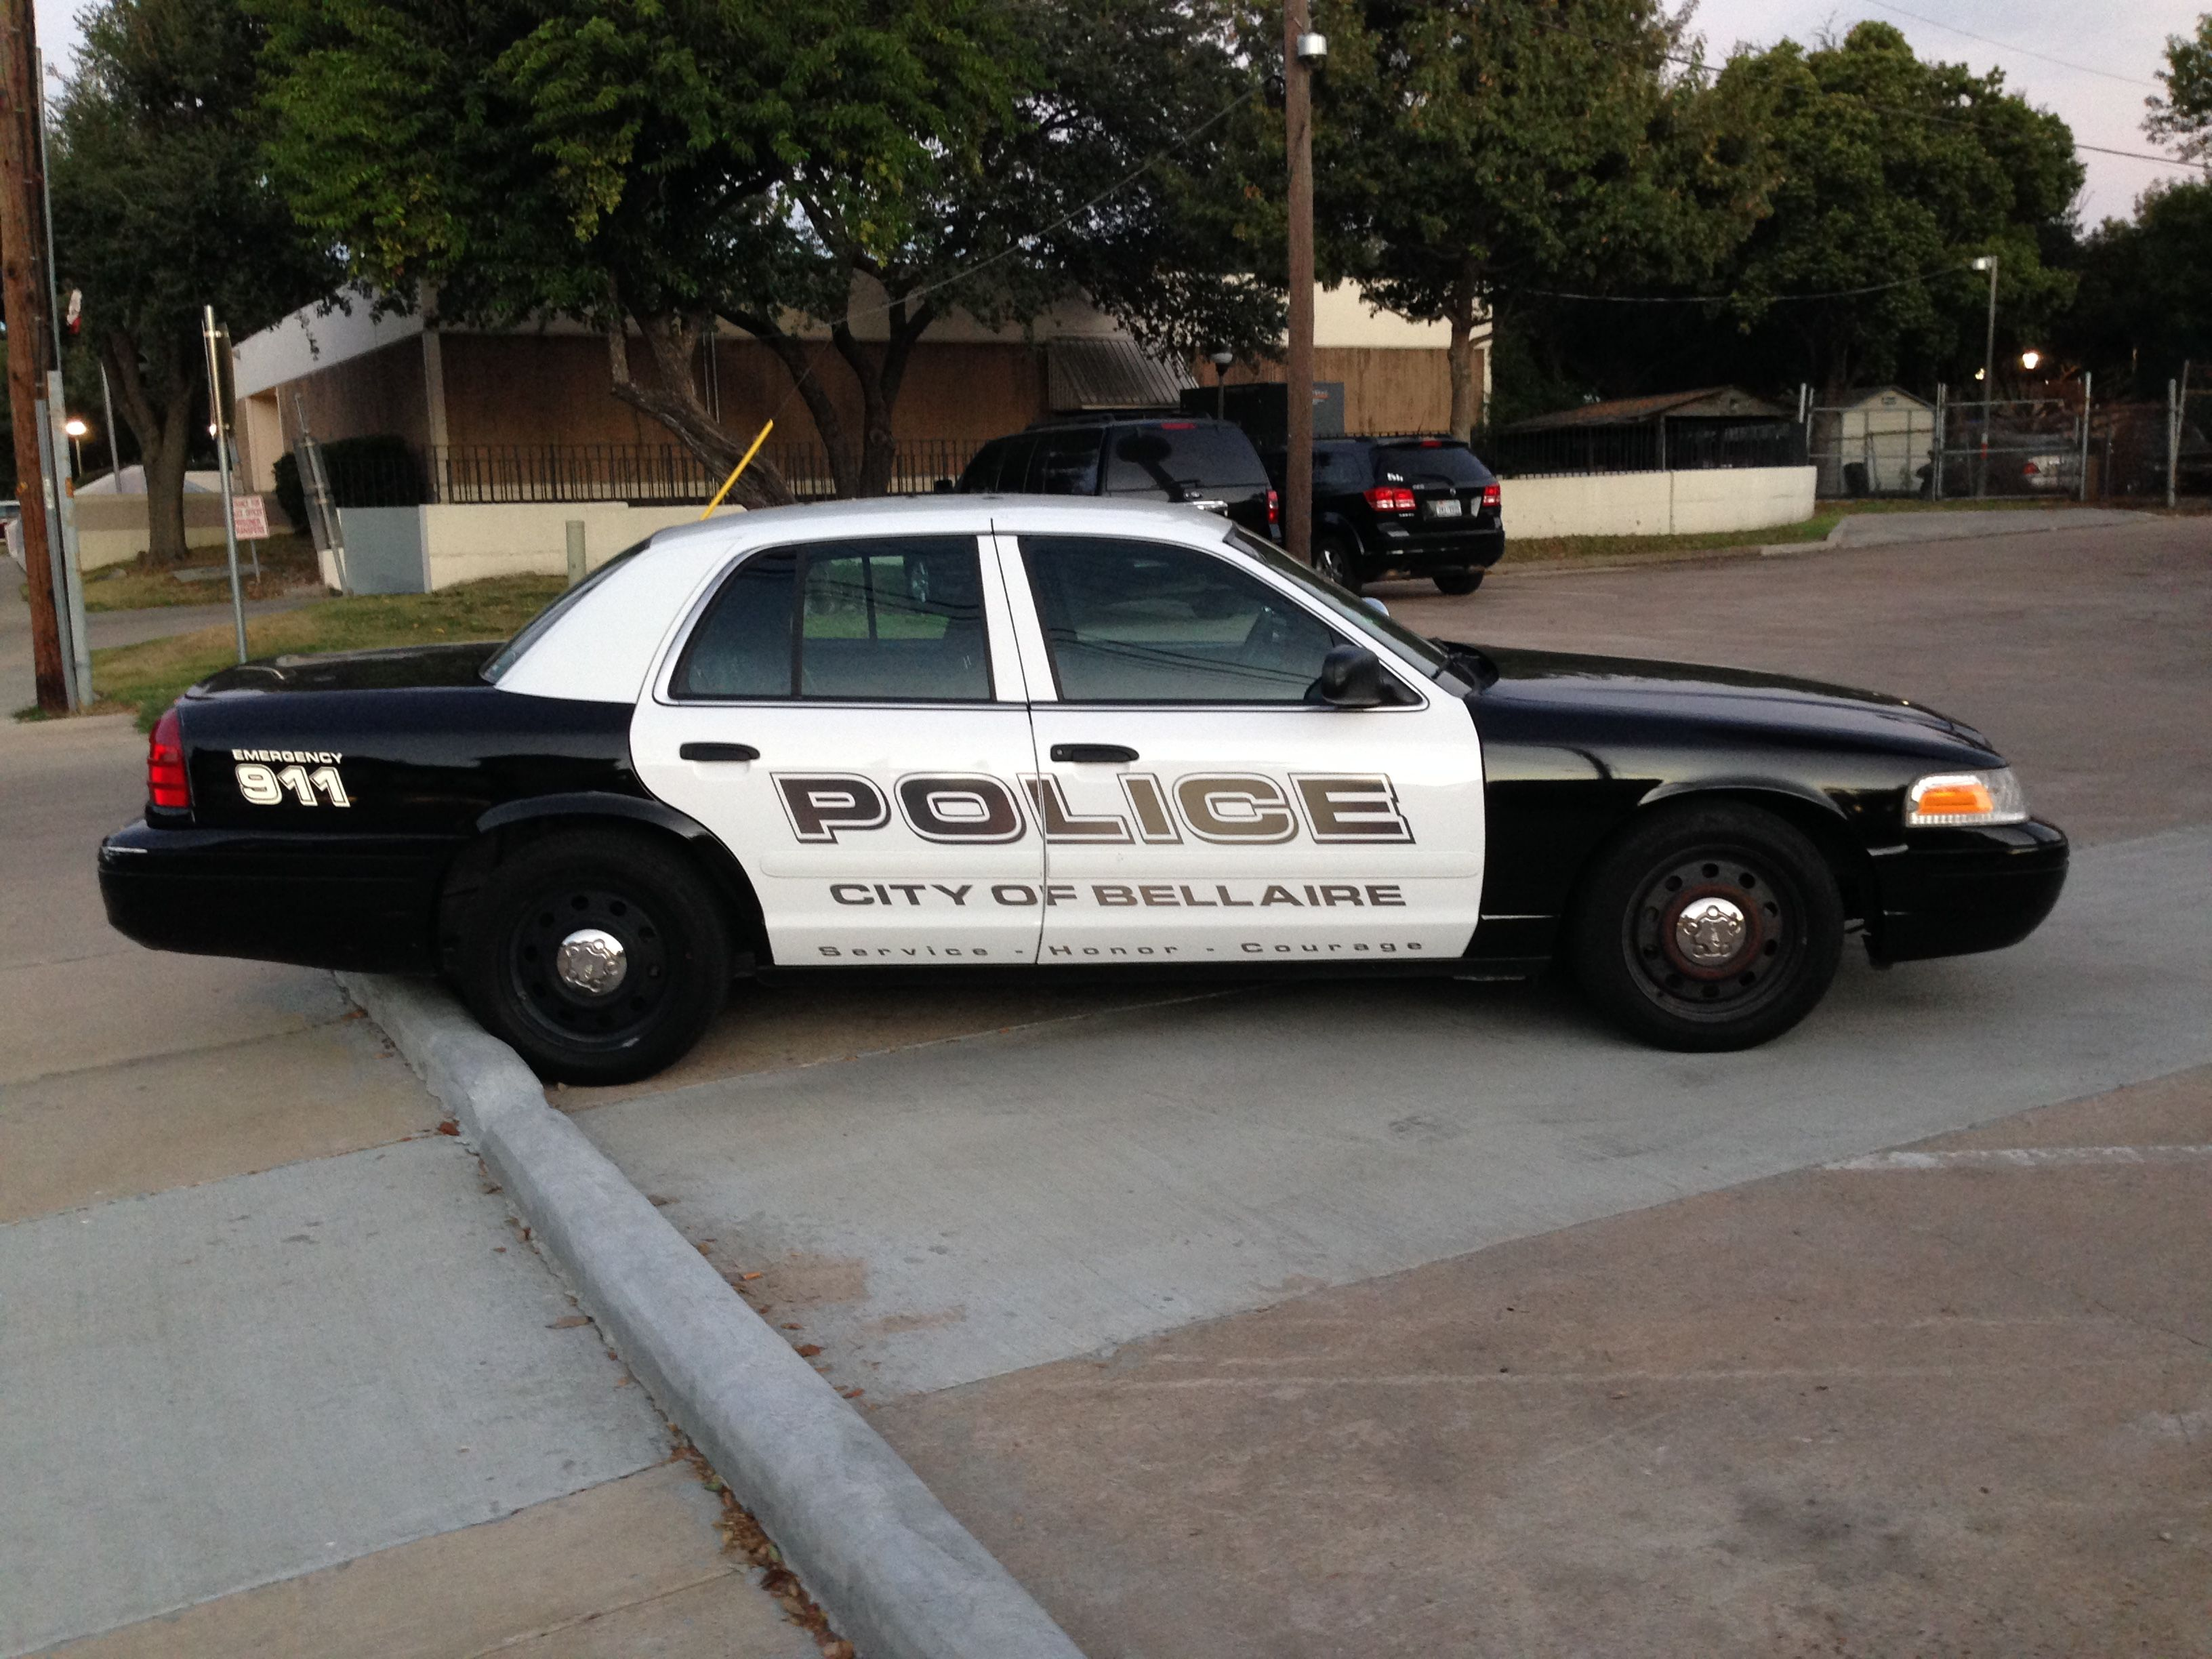 Bellaire Police Ford Crown Victoria (Texas) Police